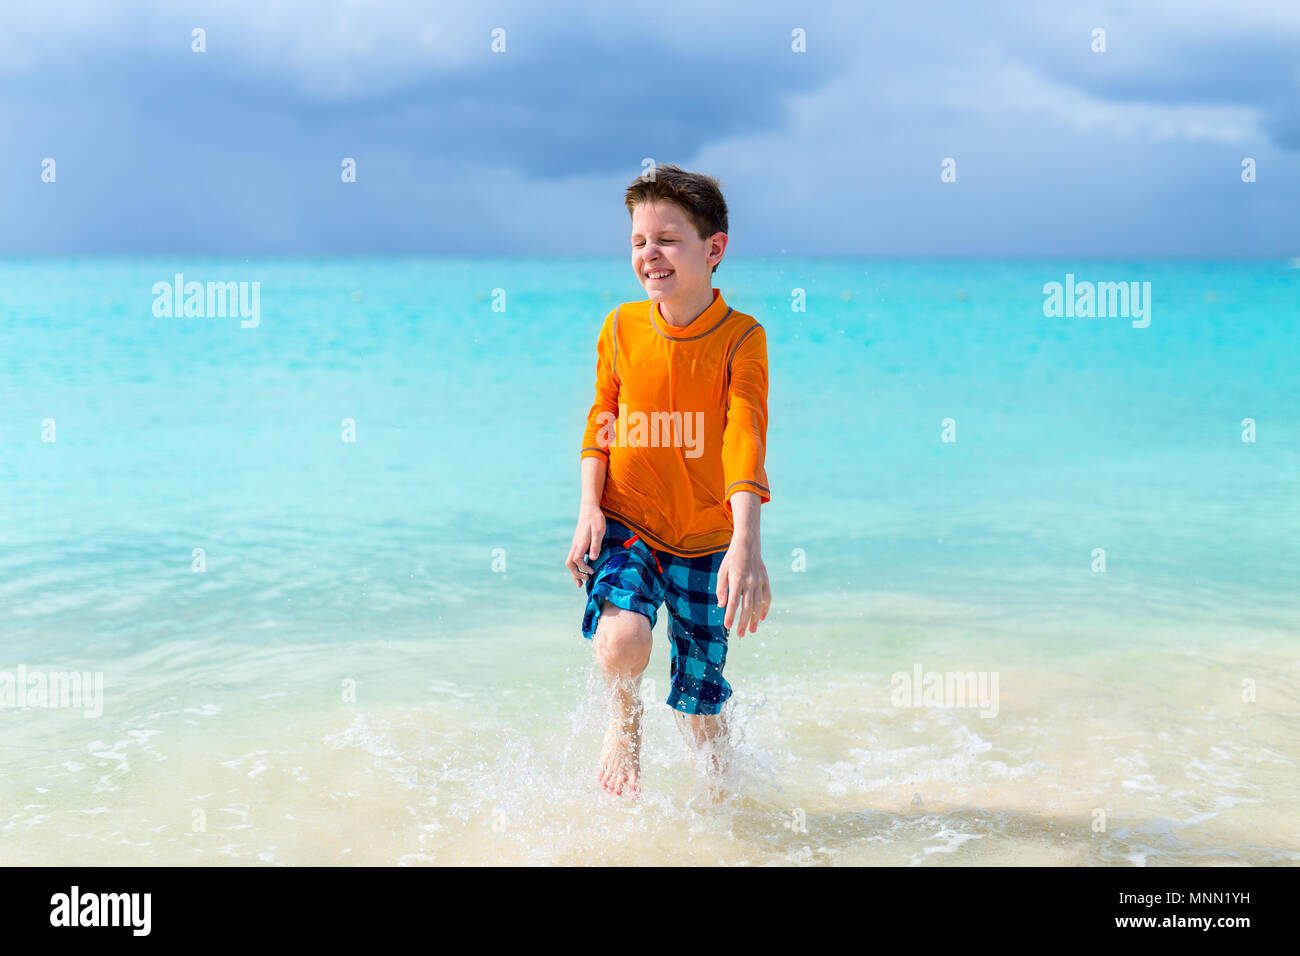 Cute boy in sun protection rash guard at tropical beach on summer vacation - Stock Image